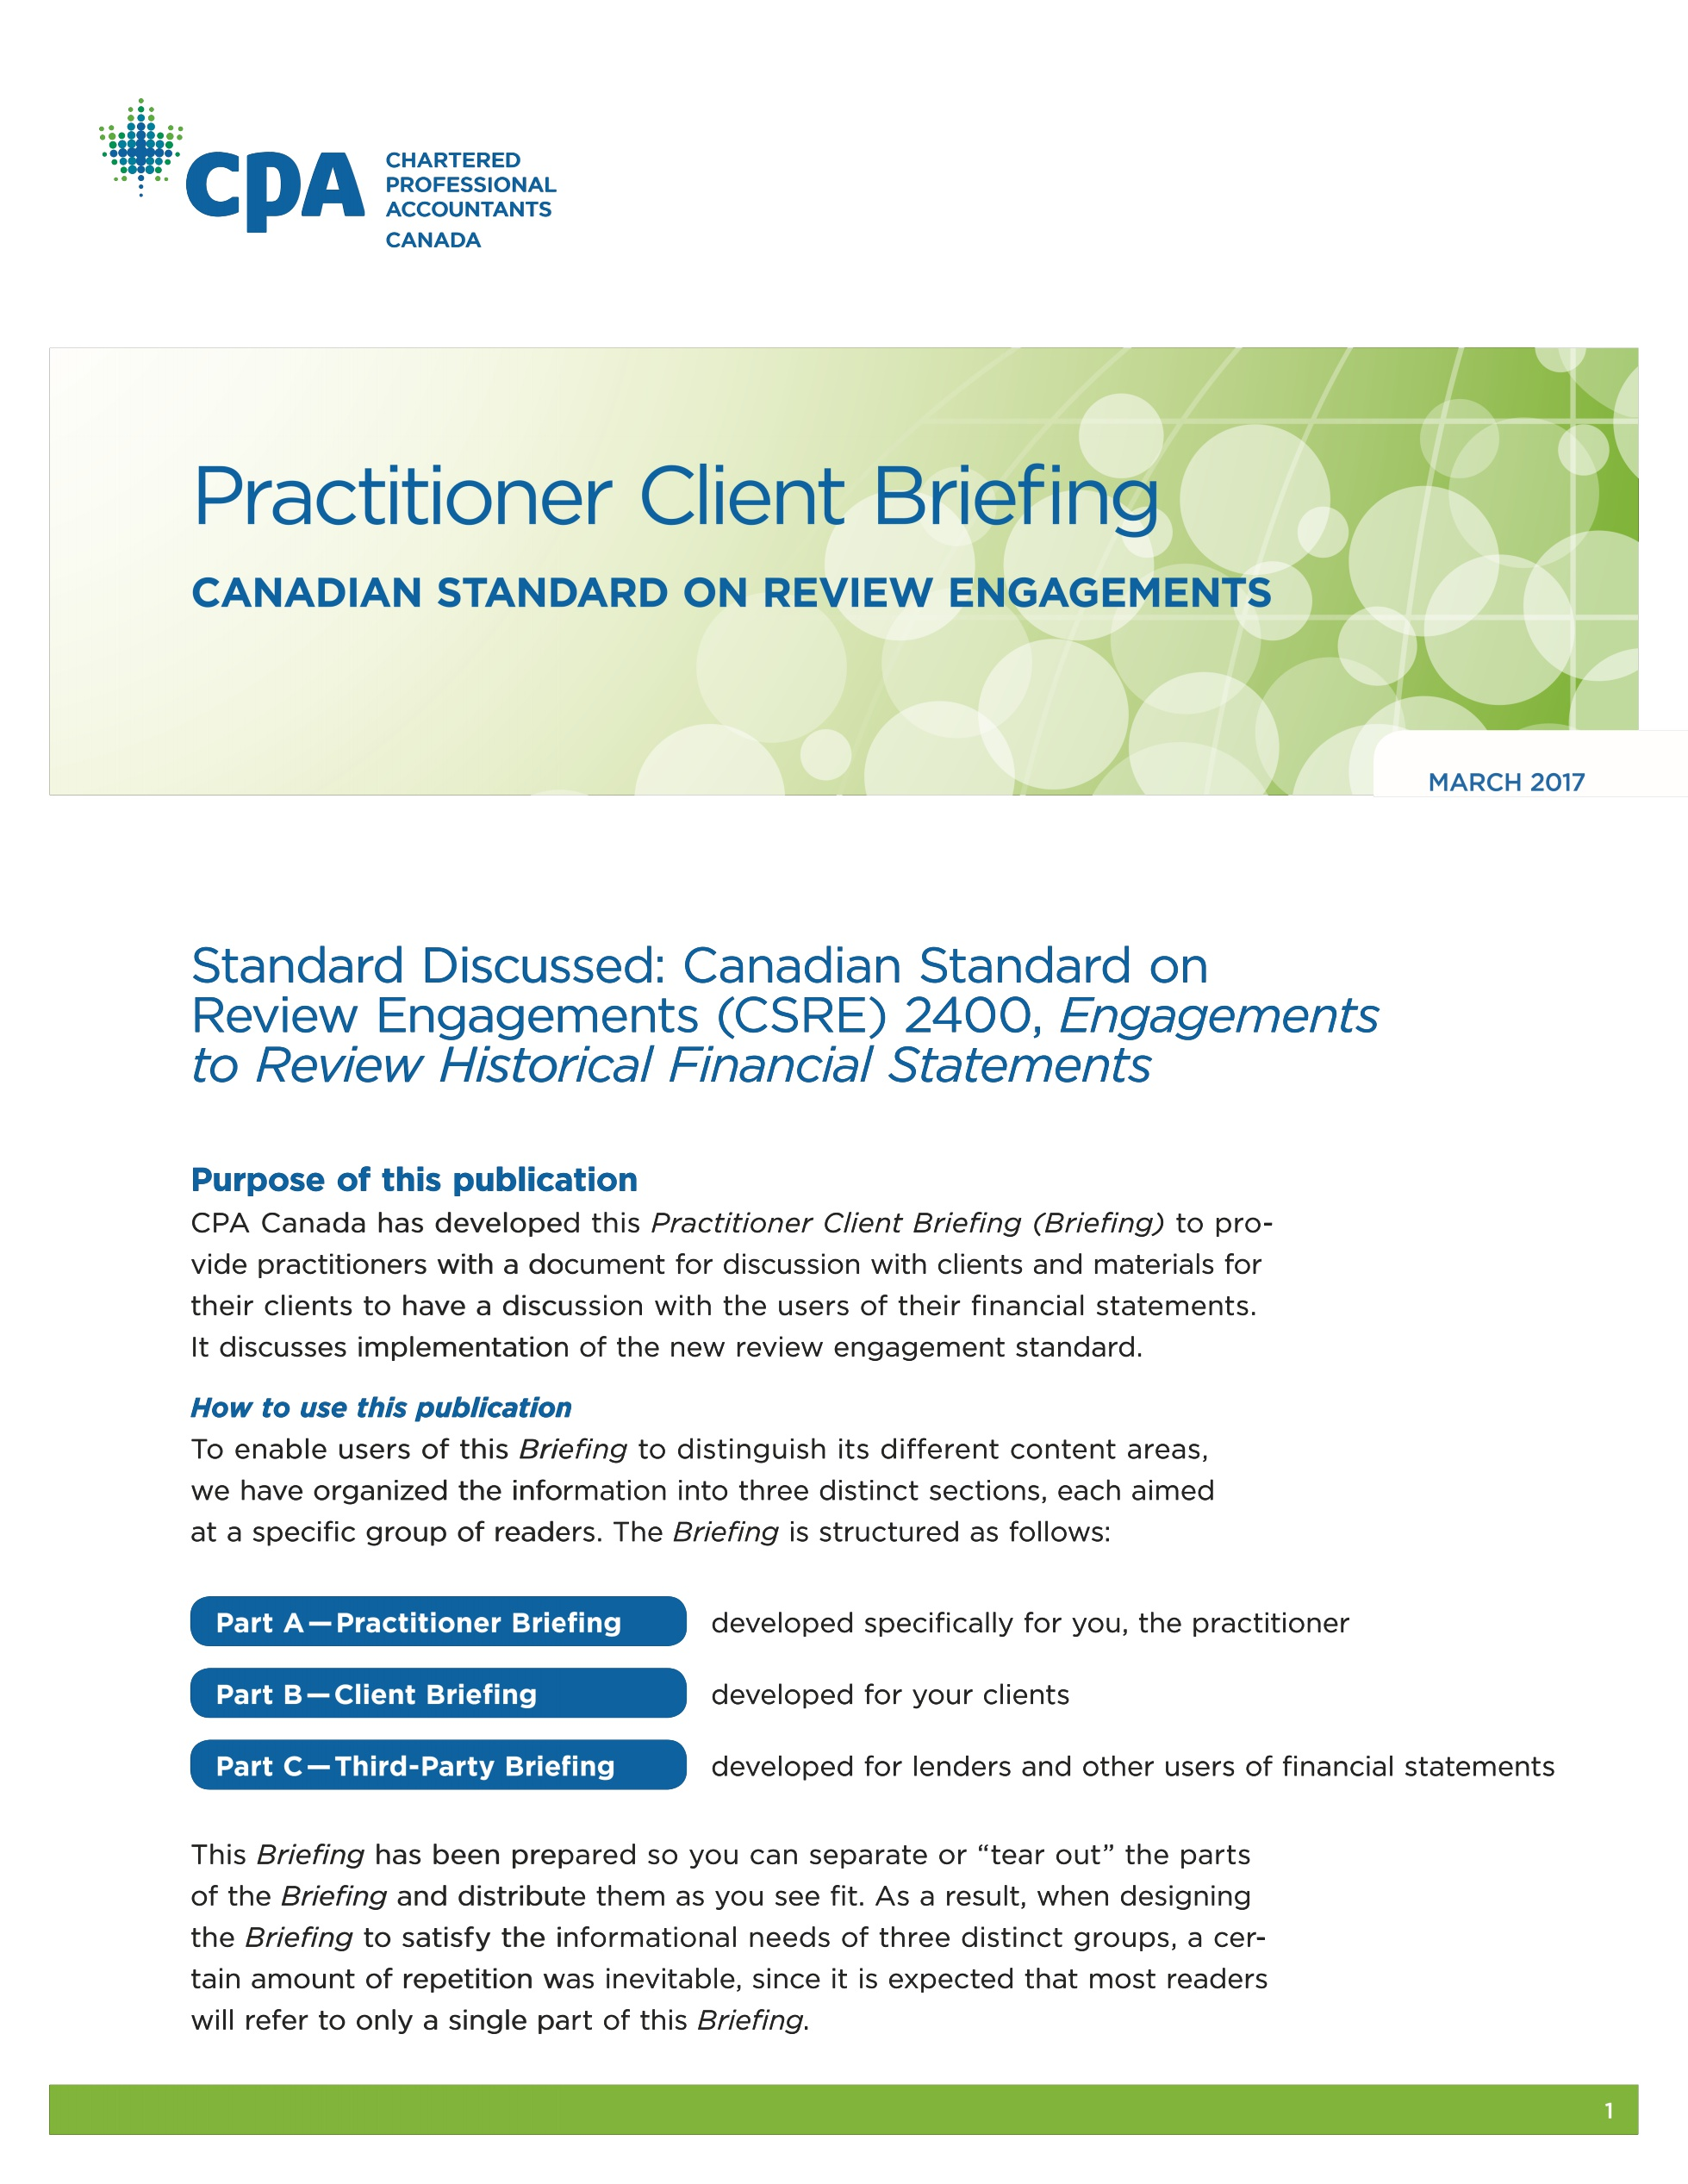 Practitioner Client Briefing: Canadi